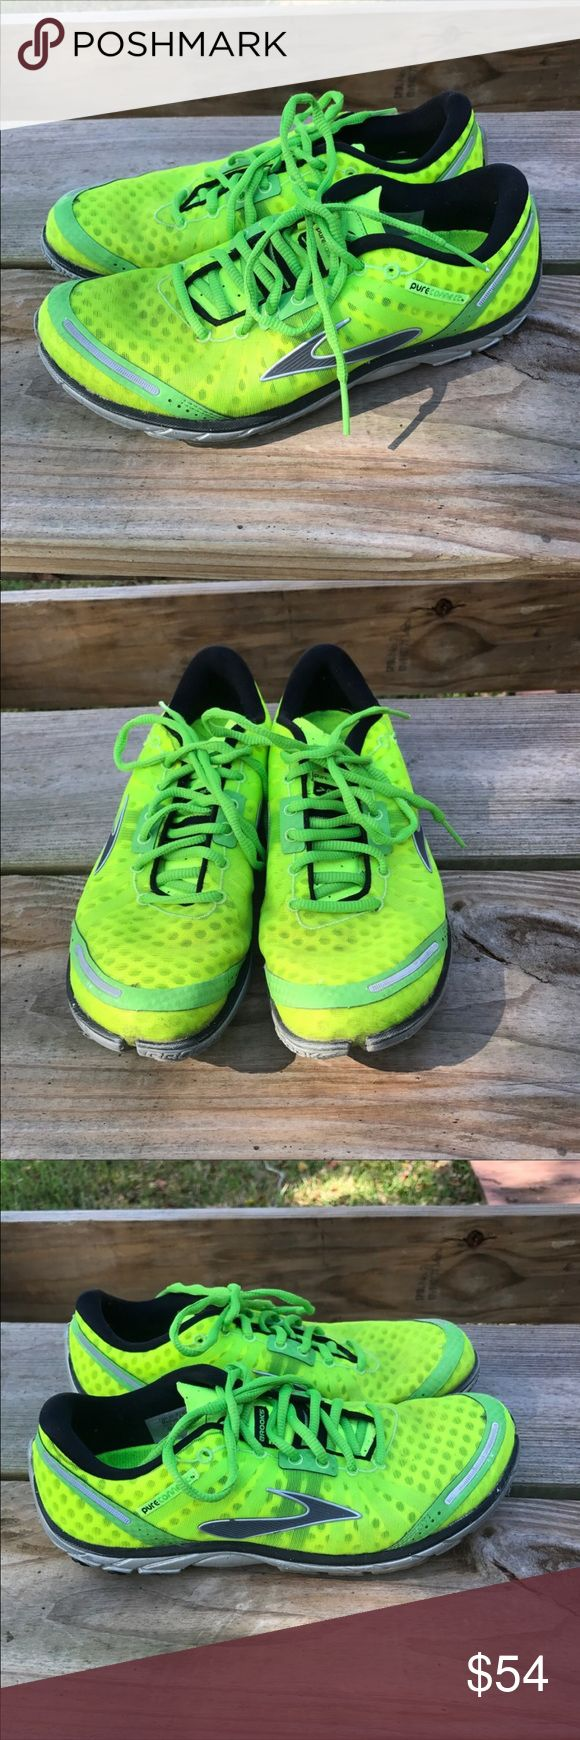 Brooks Pure Connect neon running shoes sz 10 Brooks Pure Connect neon running shoes in a size 10. Lots of wear left. I've taken a pic of the tread and everything is as pictured. Brooks Shoes Sneakers